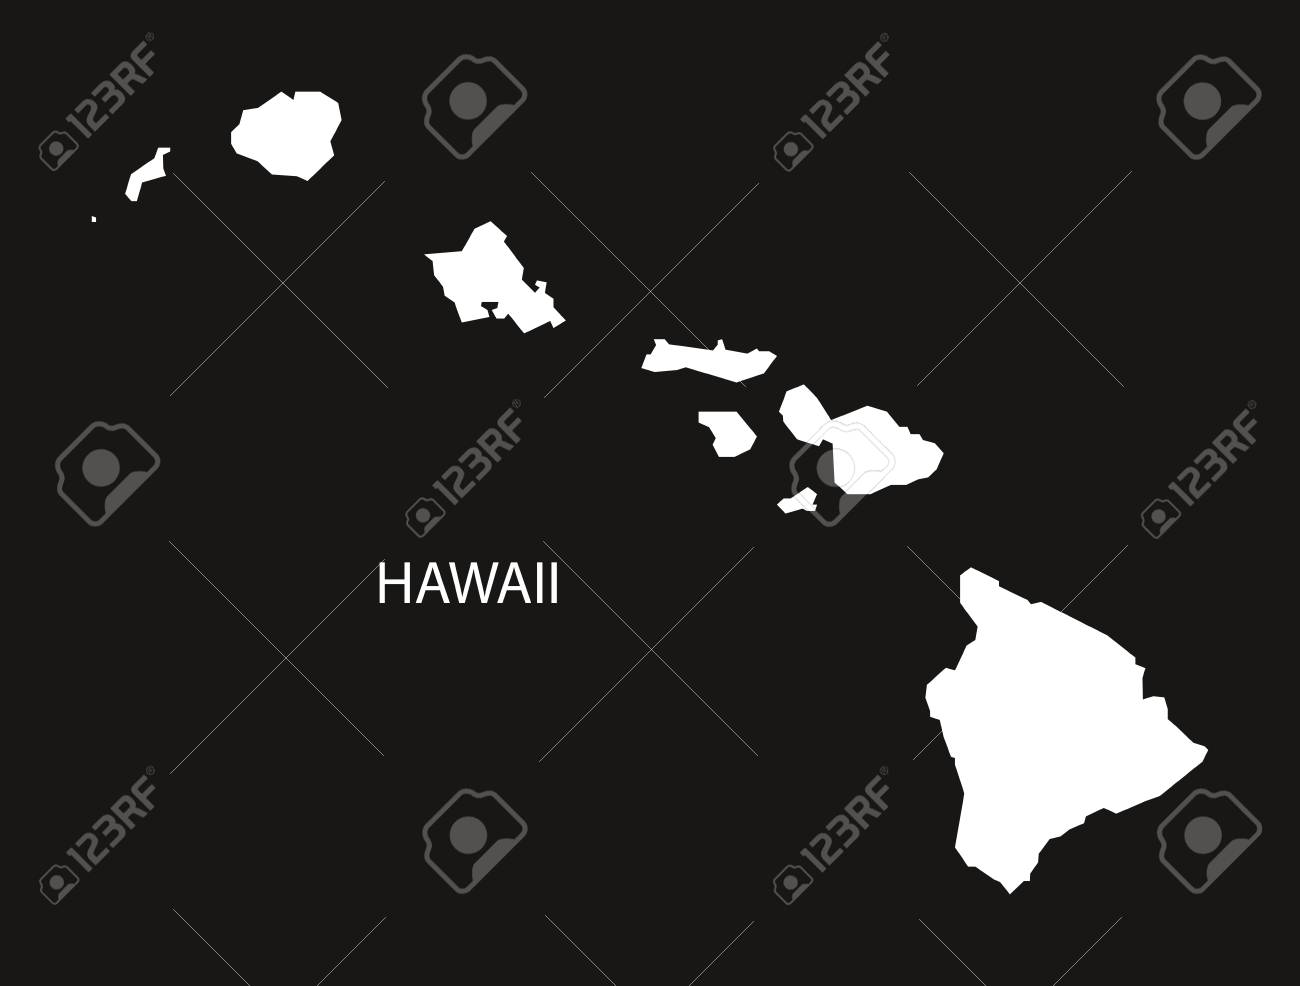 Hawaii Usa Map Black Inverted Silhouette Royalty Free Cliparts